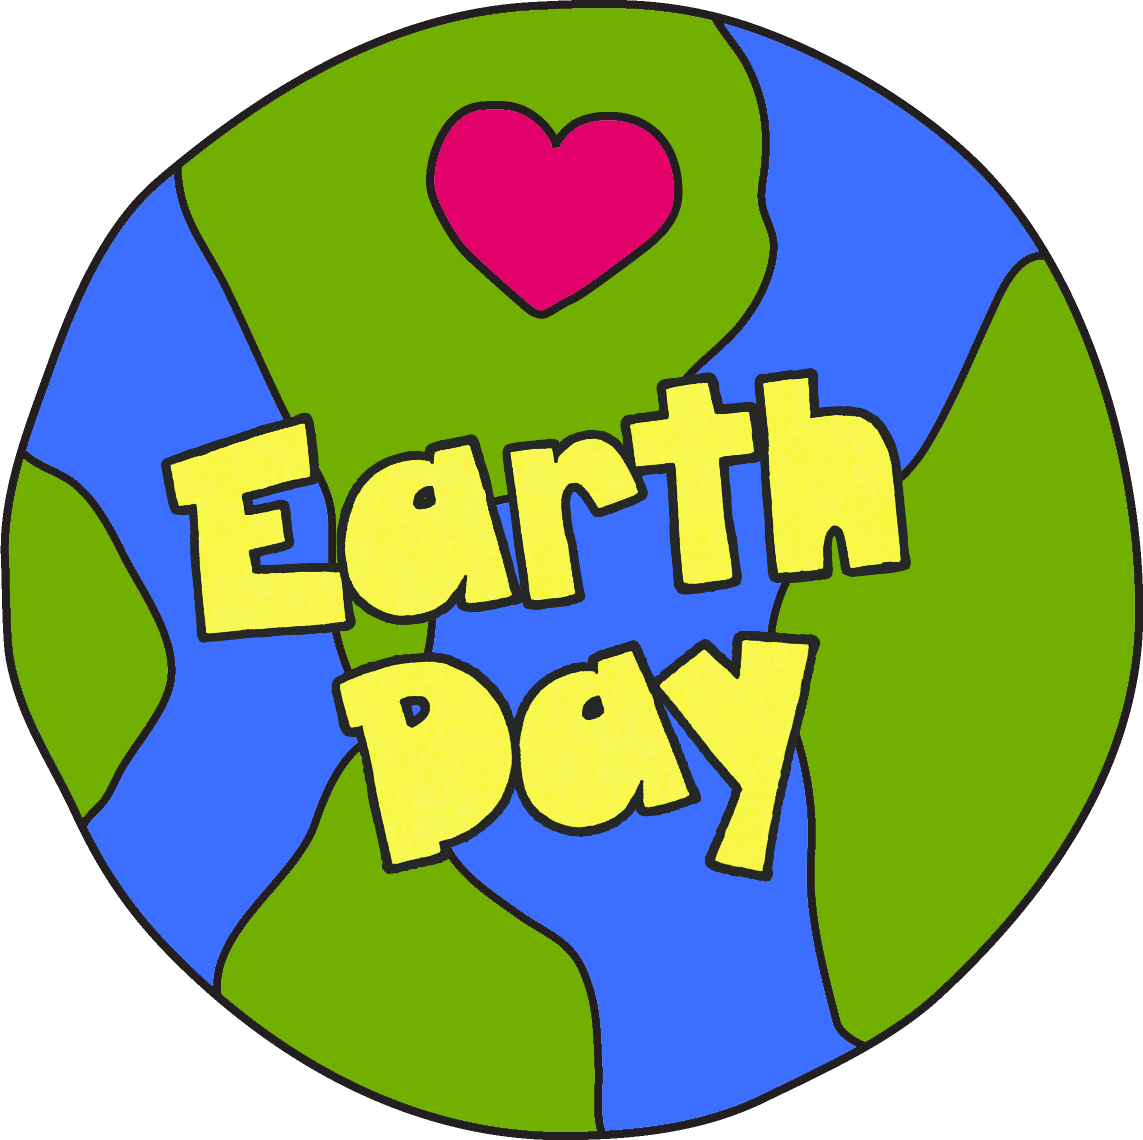 Free Png Earth Day Download Vector image #40644